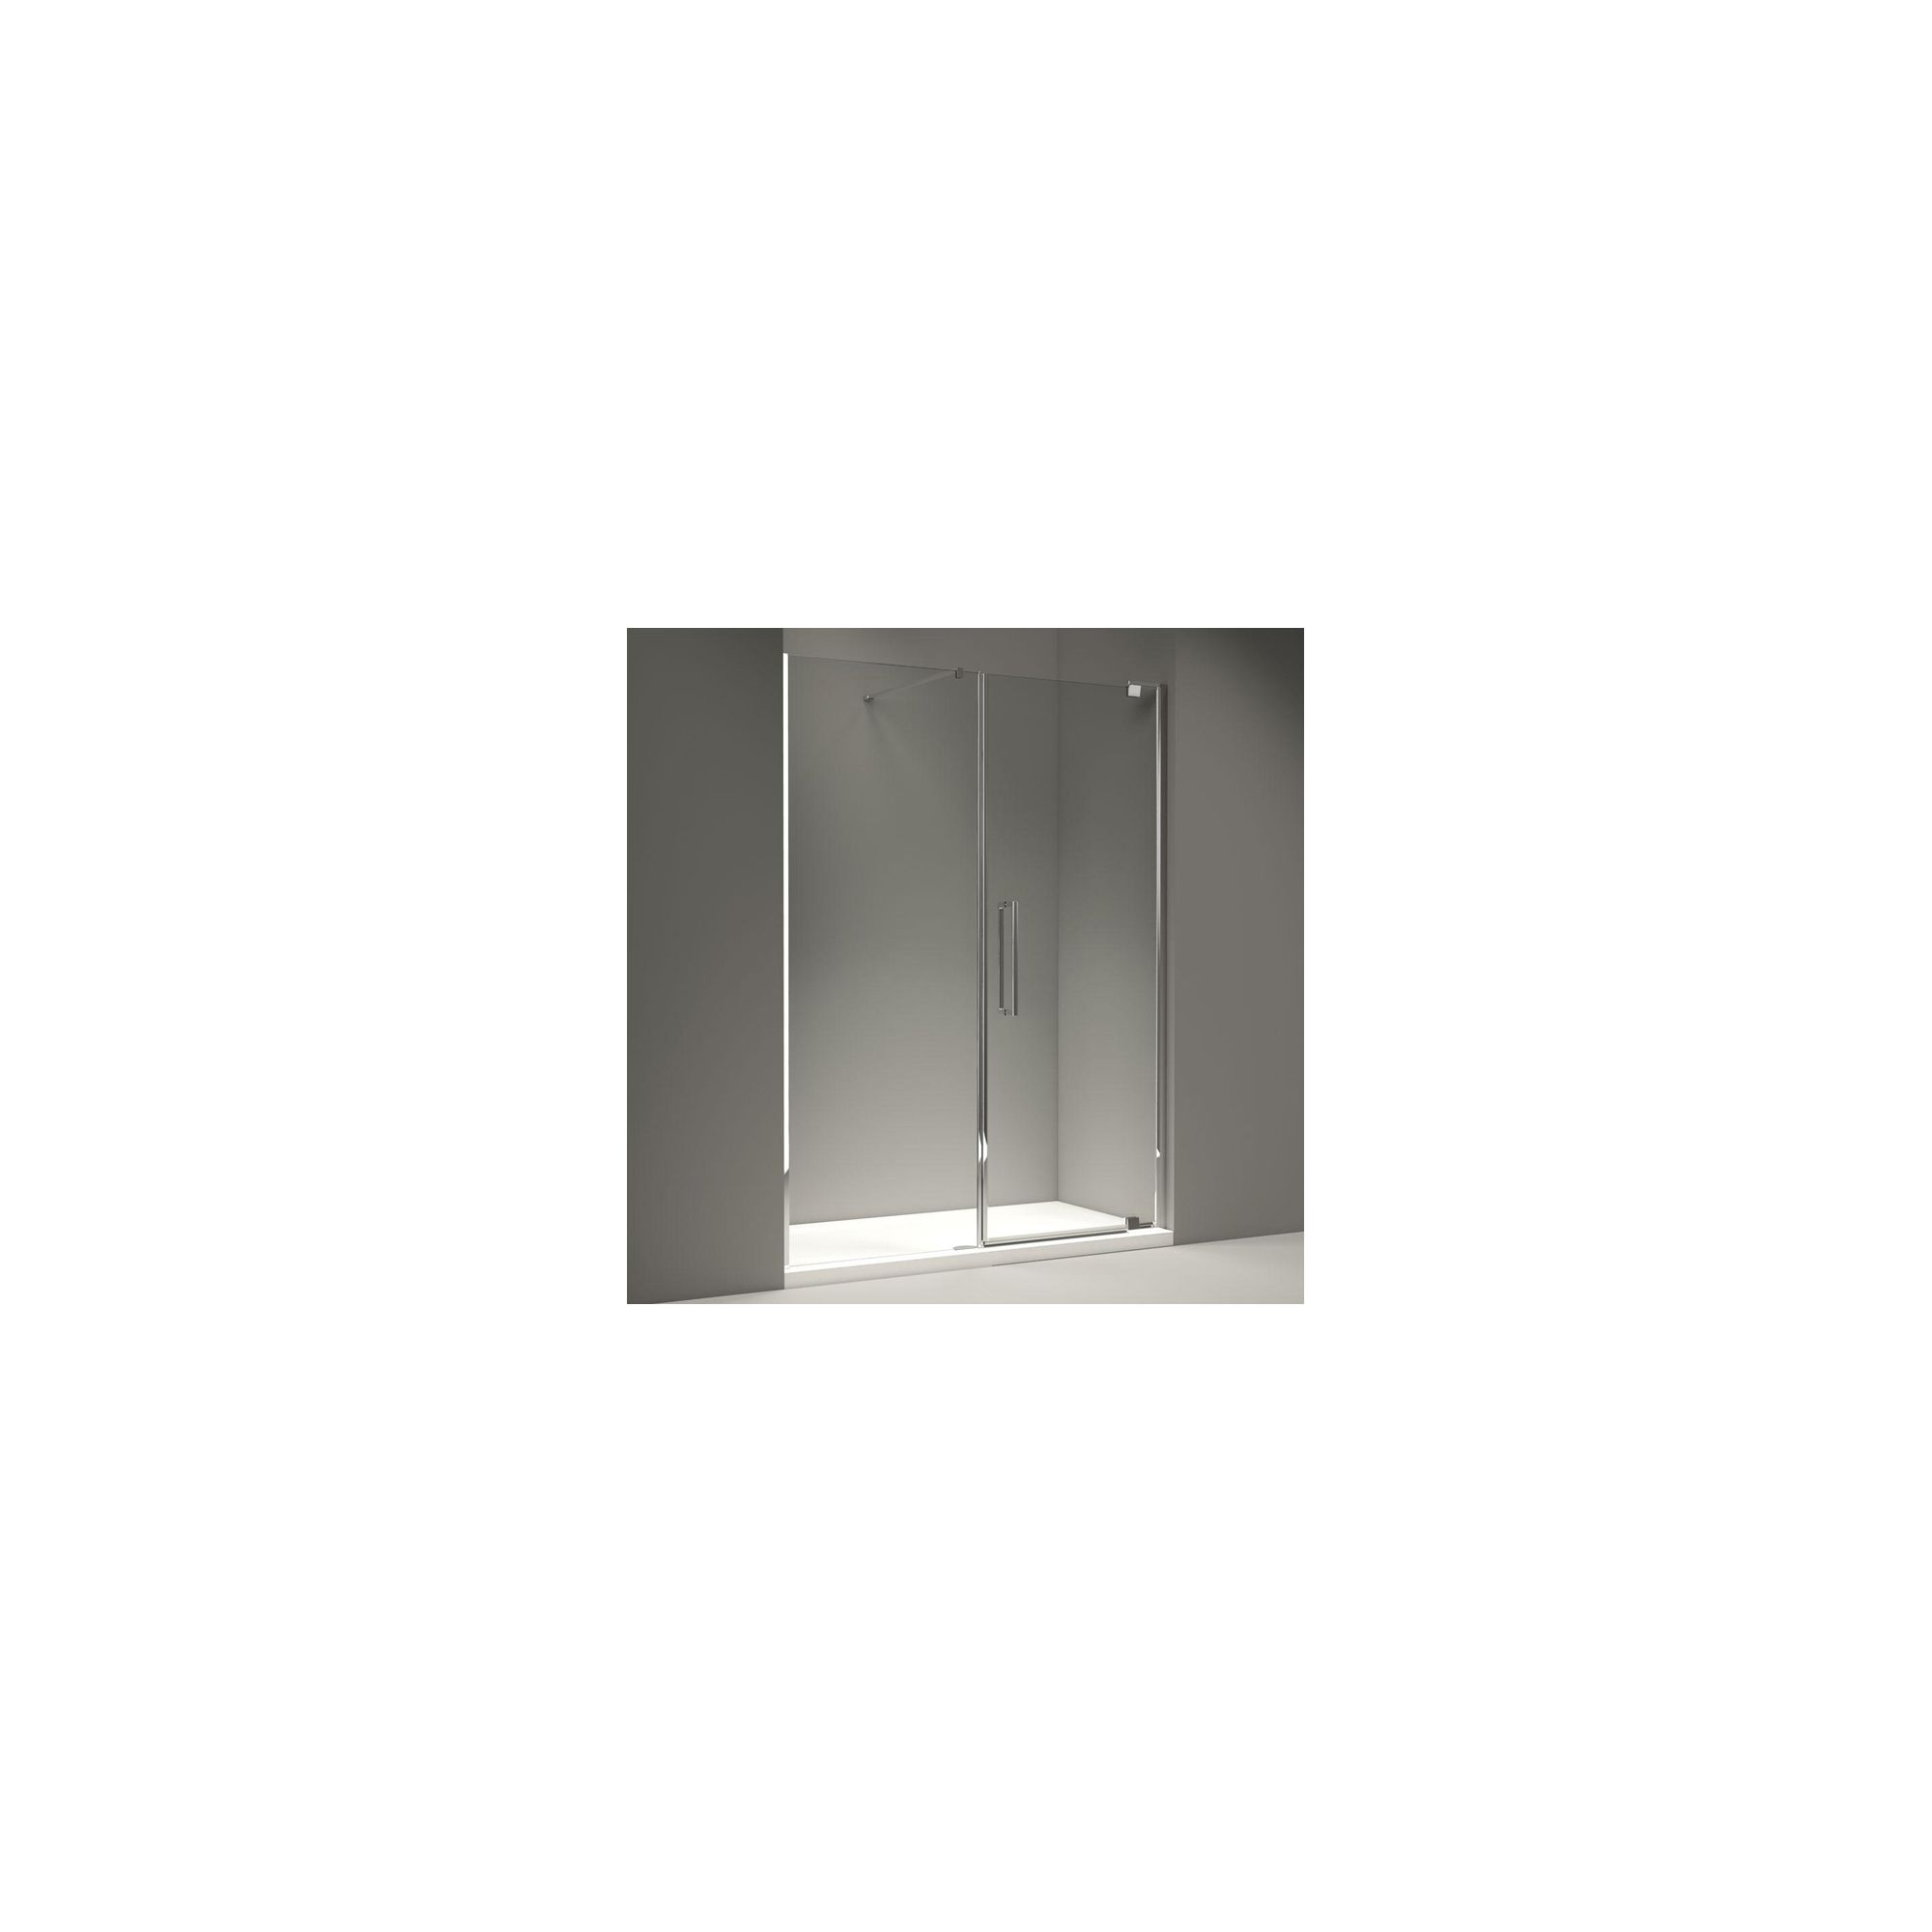 Merlyn Series 10 Inline Pivot Shower Door, 1200mm Wide, 10mm Smoked Glass at Tesco Direct